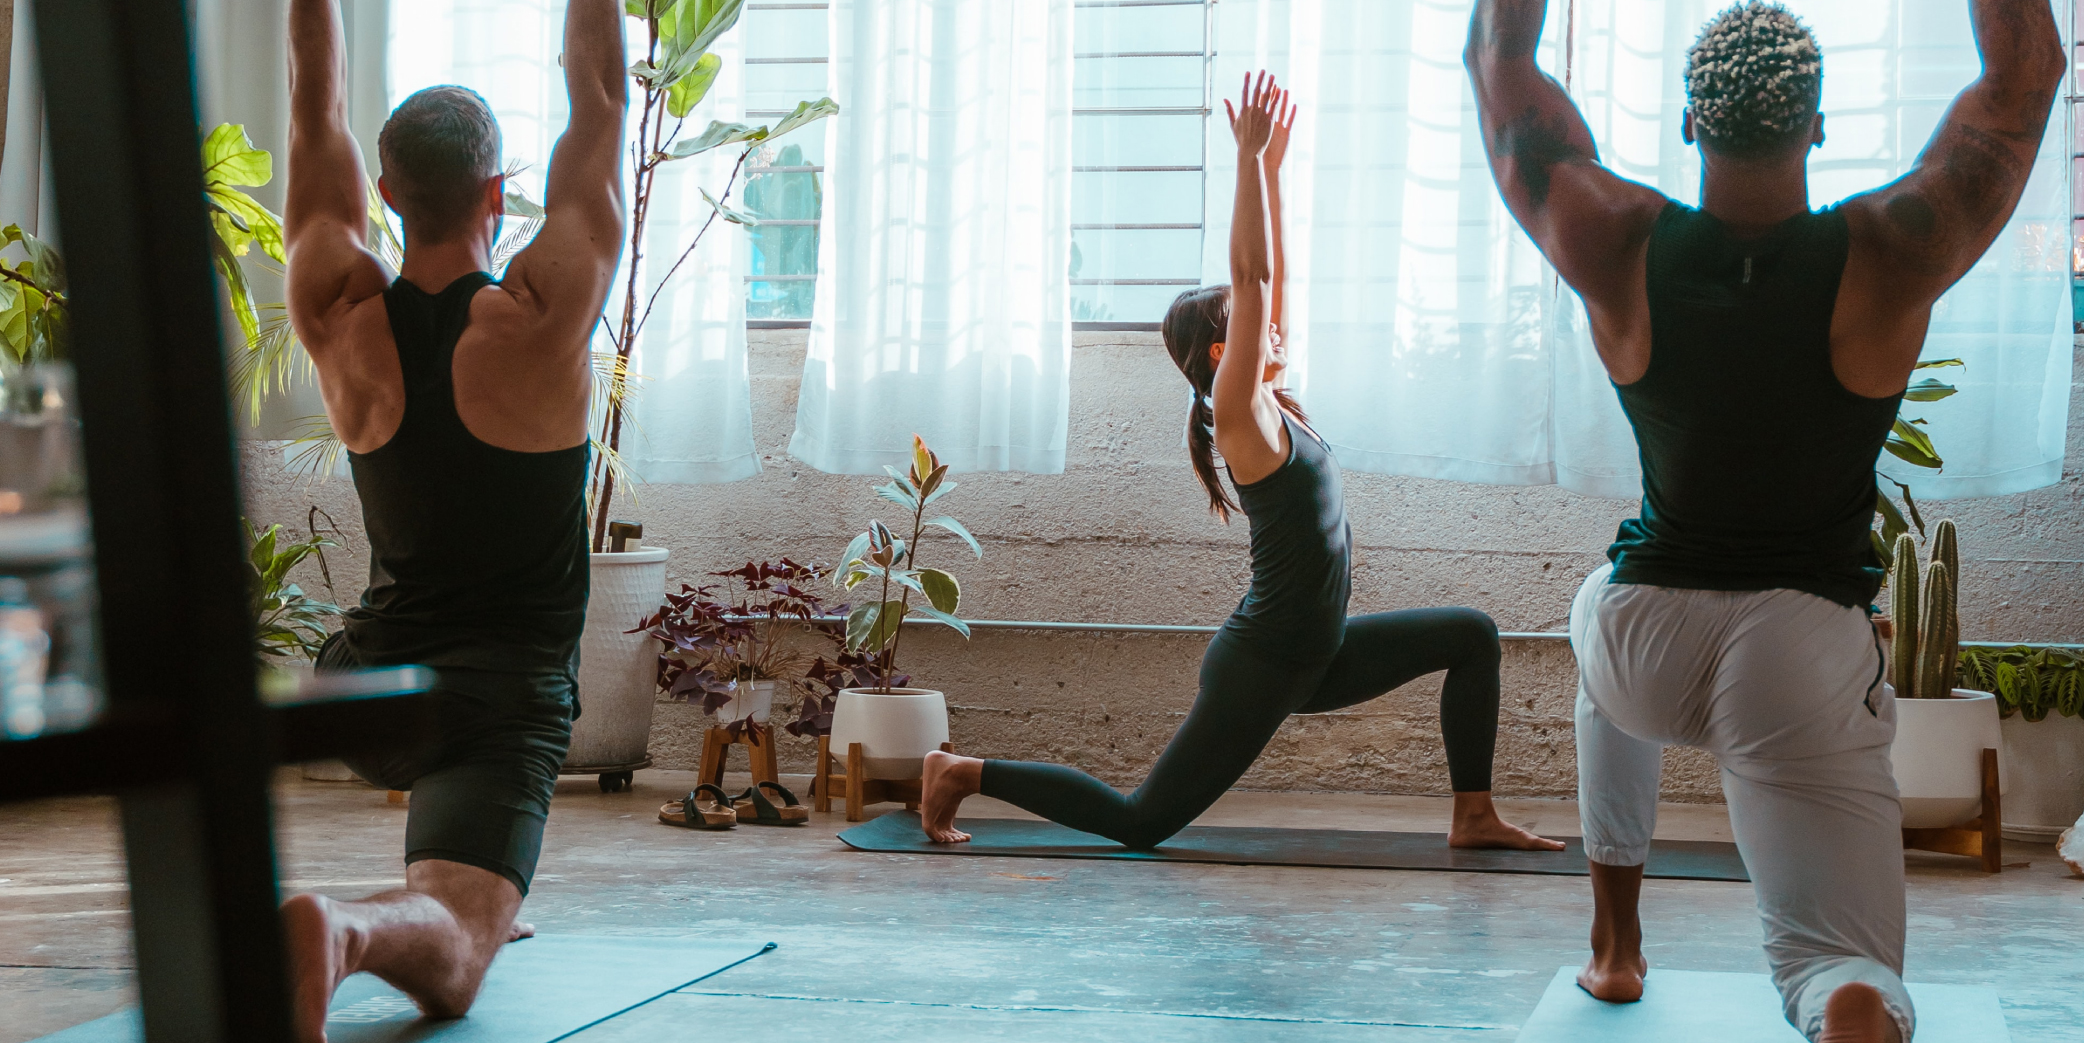 Benefits To Co-Living I Gravity